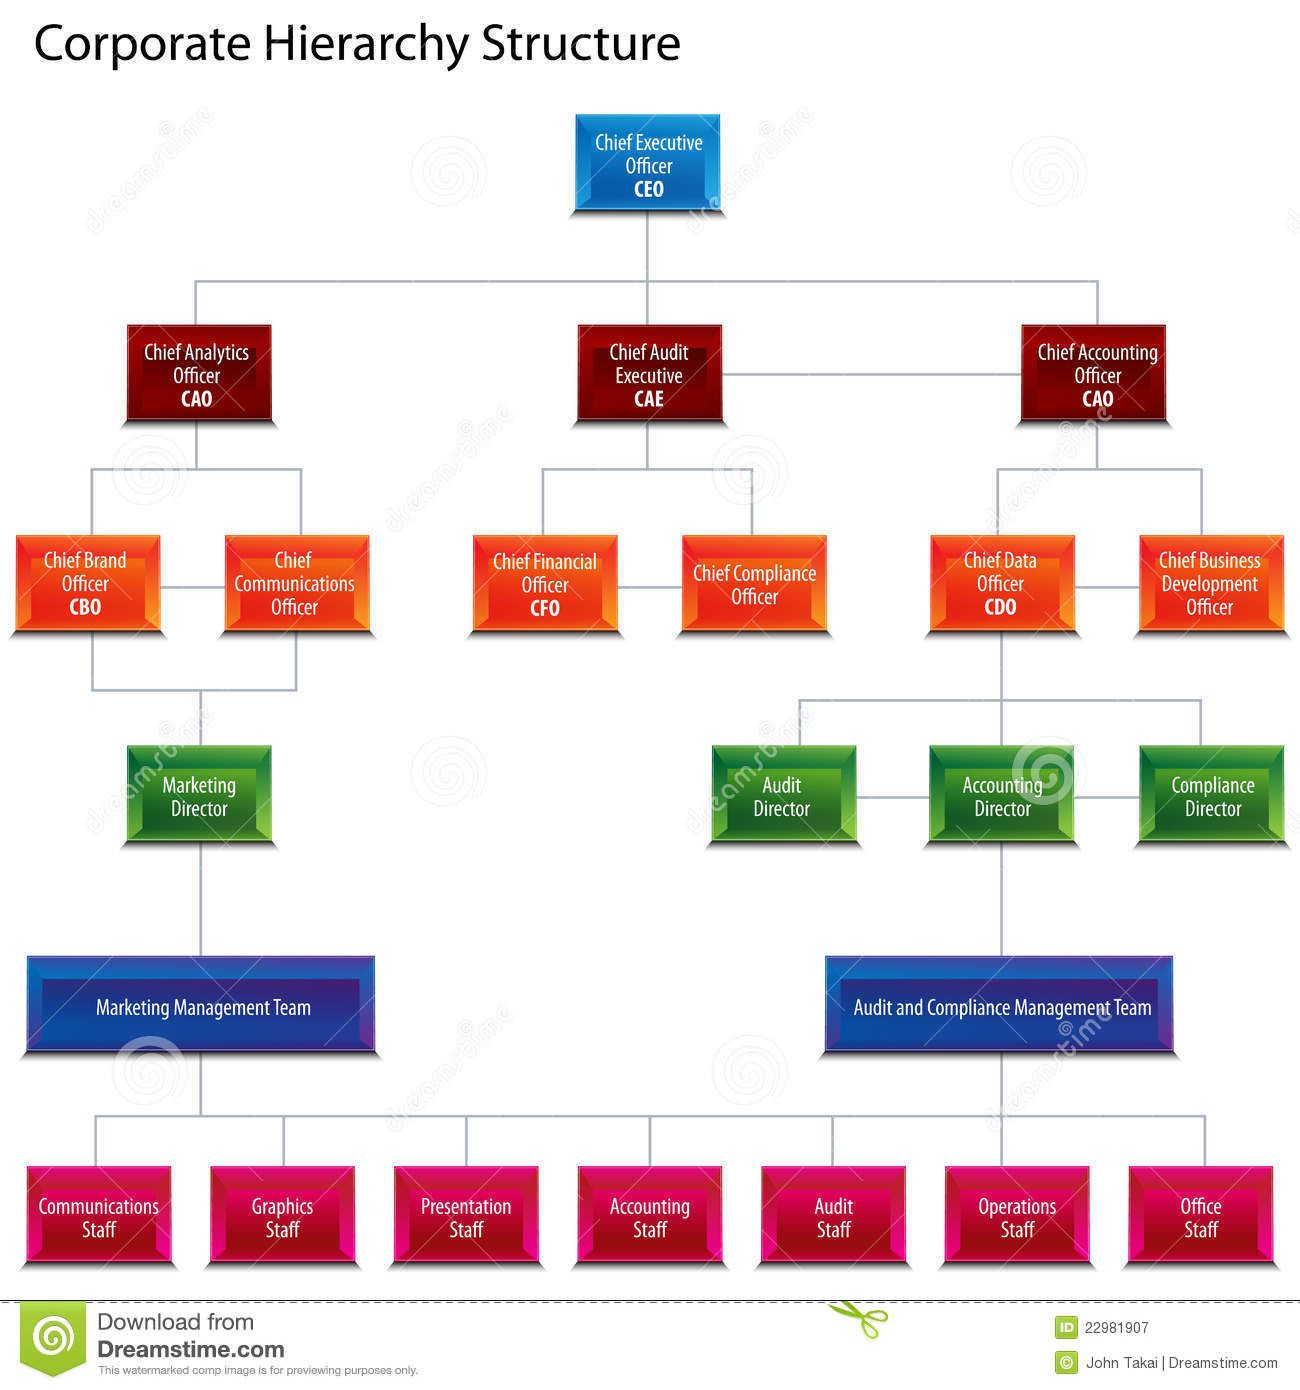 Corporate hierarchy structure chart royalty free stock photography corporate hierarchy structure chart royalty free stock photography image 22981907 ccuart